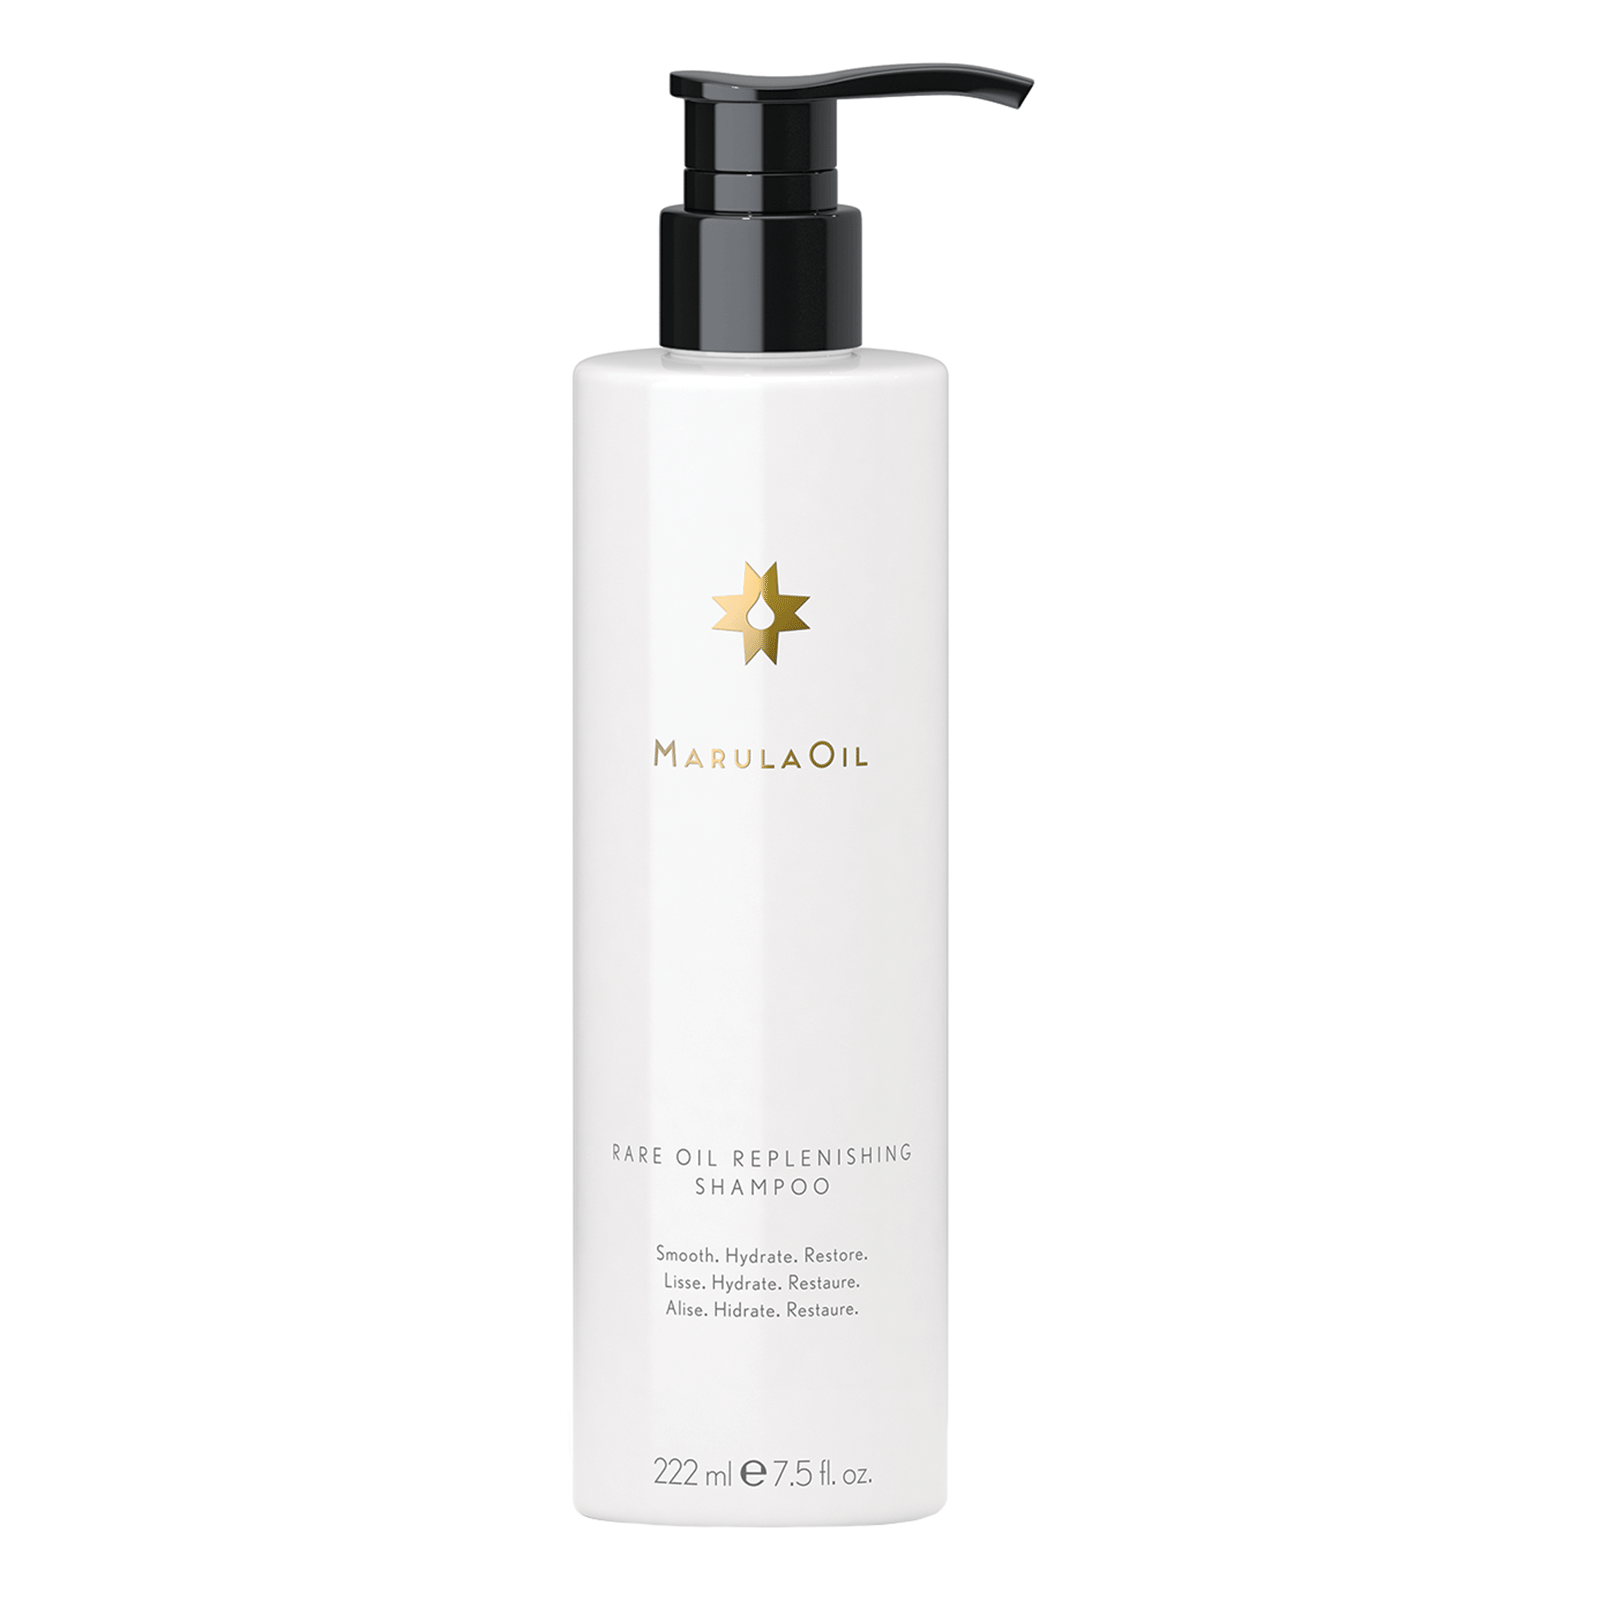 MarulaOil Rare Oil Replenishing Shampoo